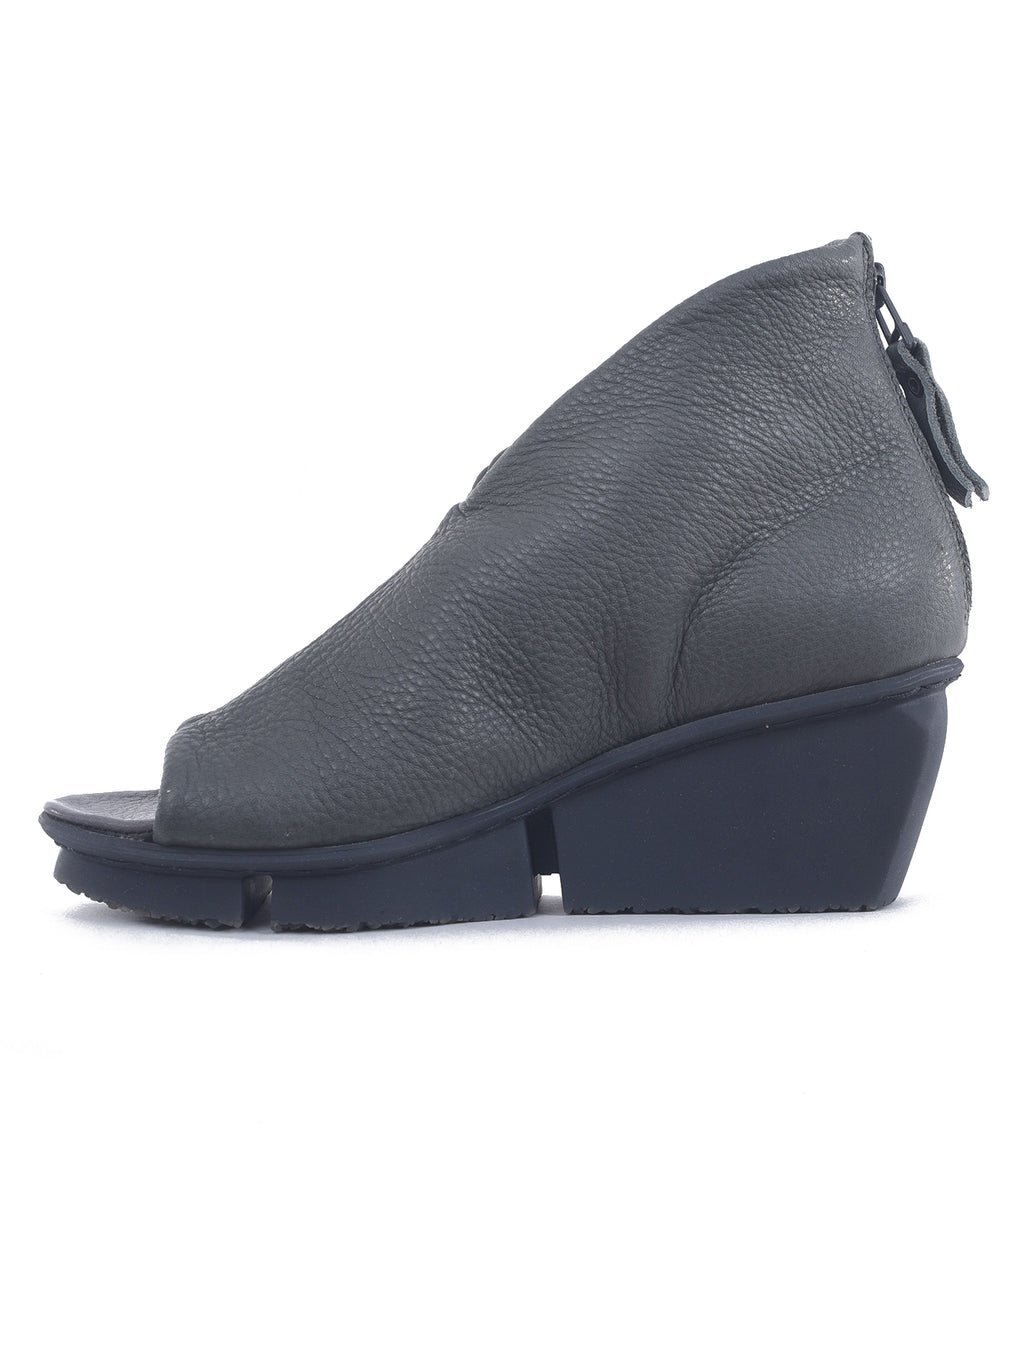 Trippen Shoes Galaxy Splitt, Beton Gray VST